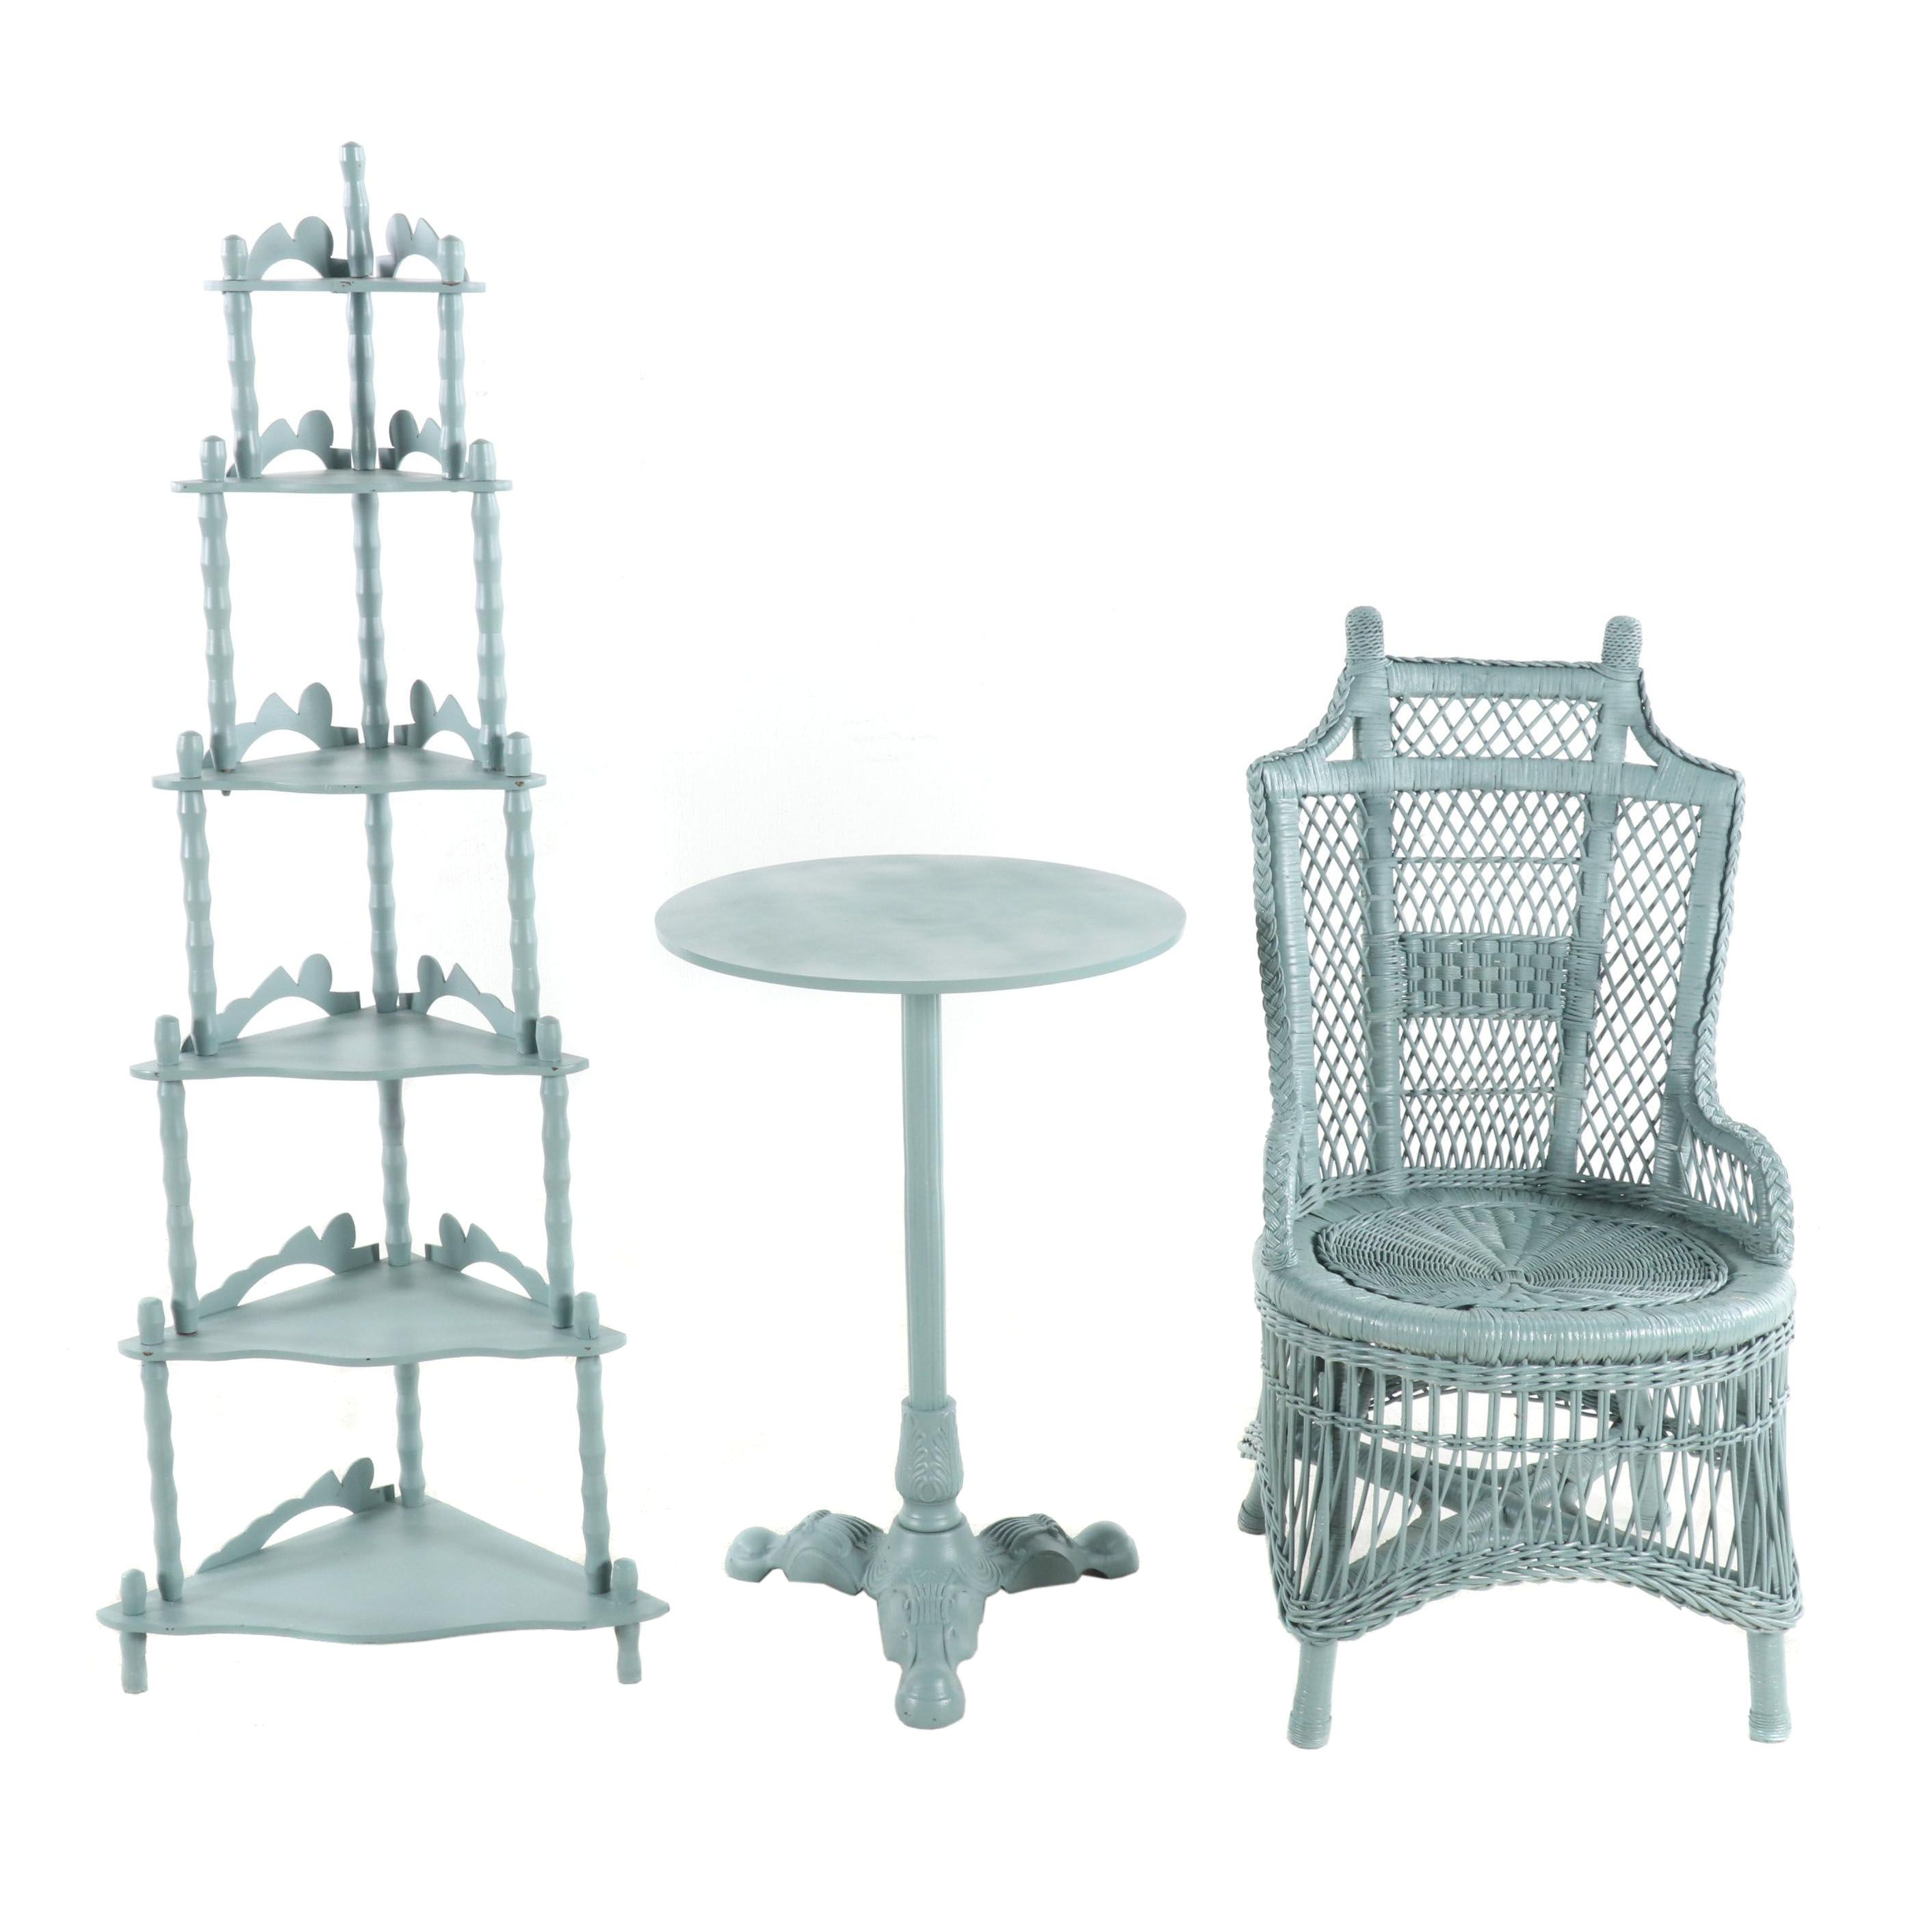 Light Blue-Painted Victorian Style Étagère, Metal Table and Wicker Chair